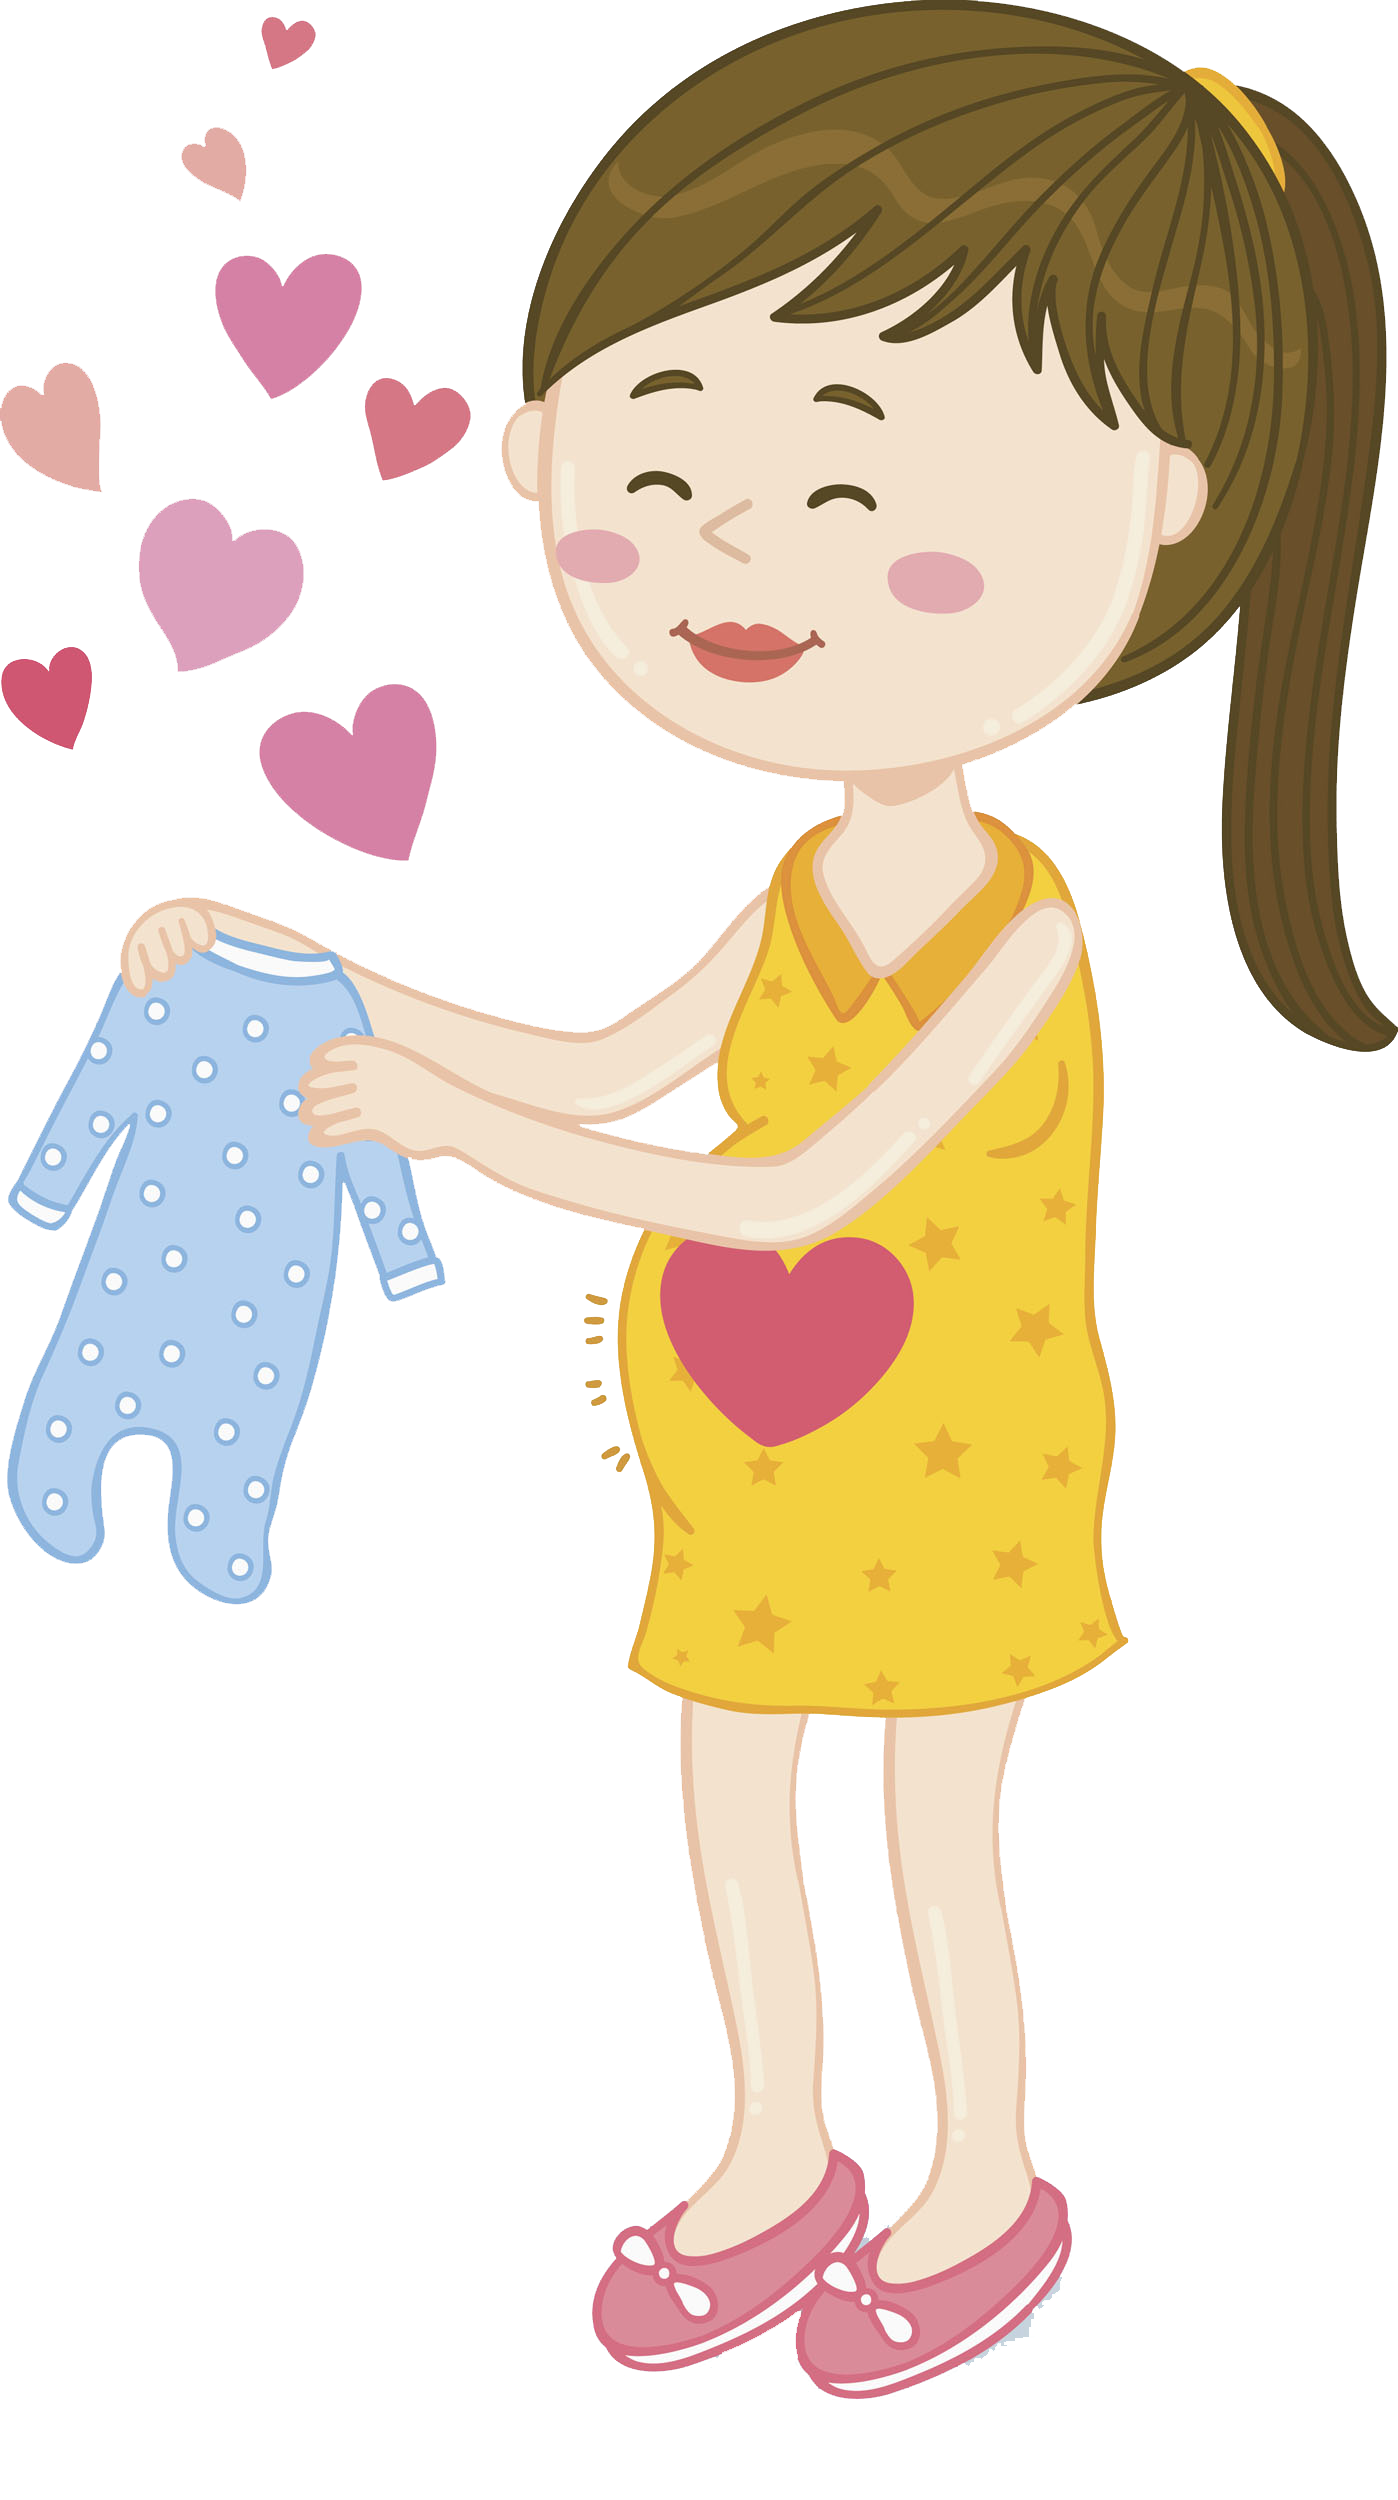 Infant clipart baby hair. Drawing pregnancy clip art